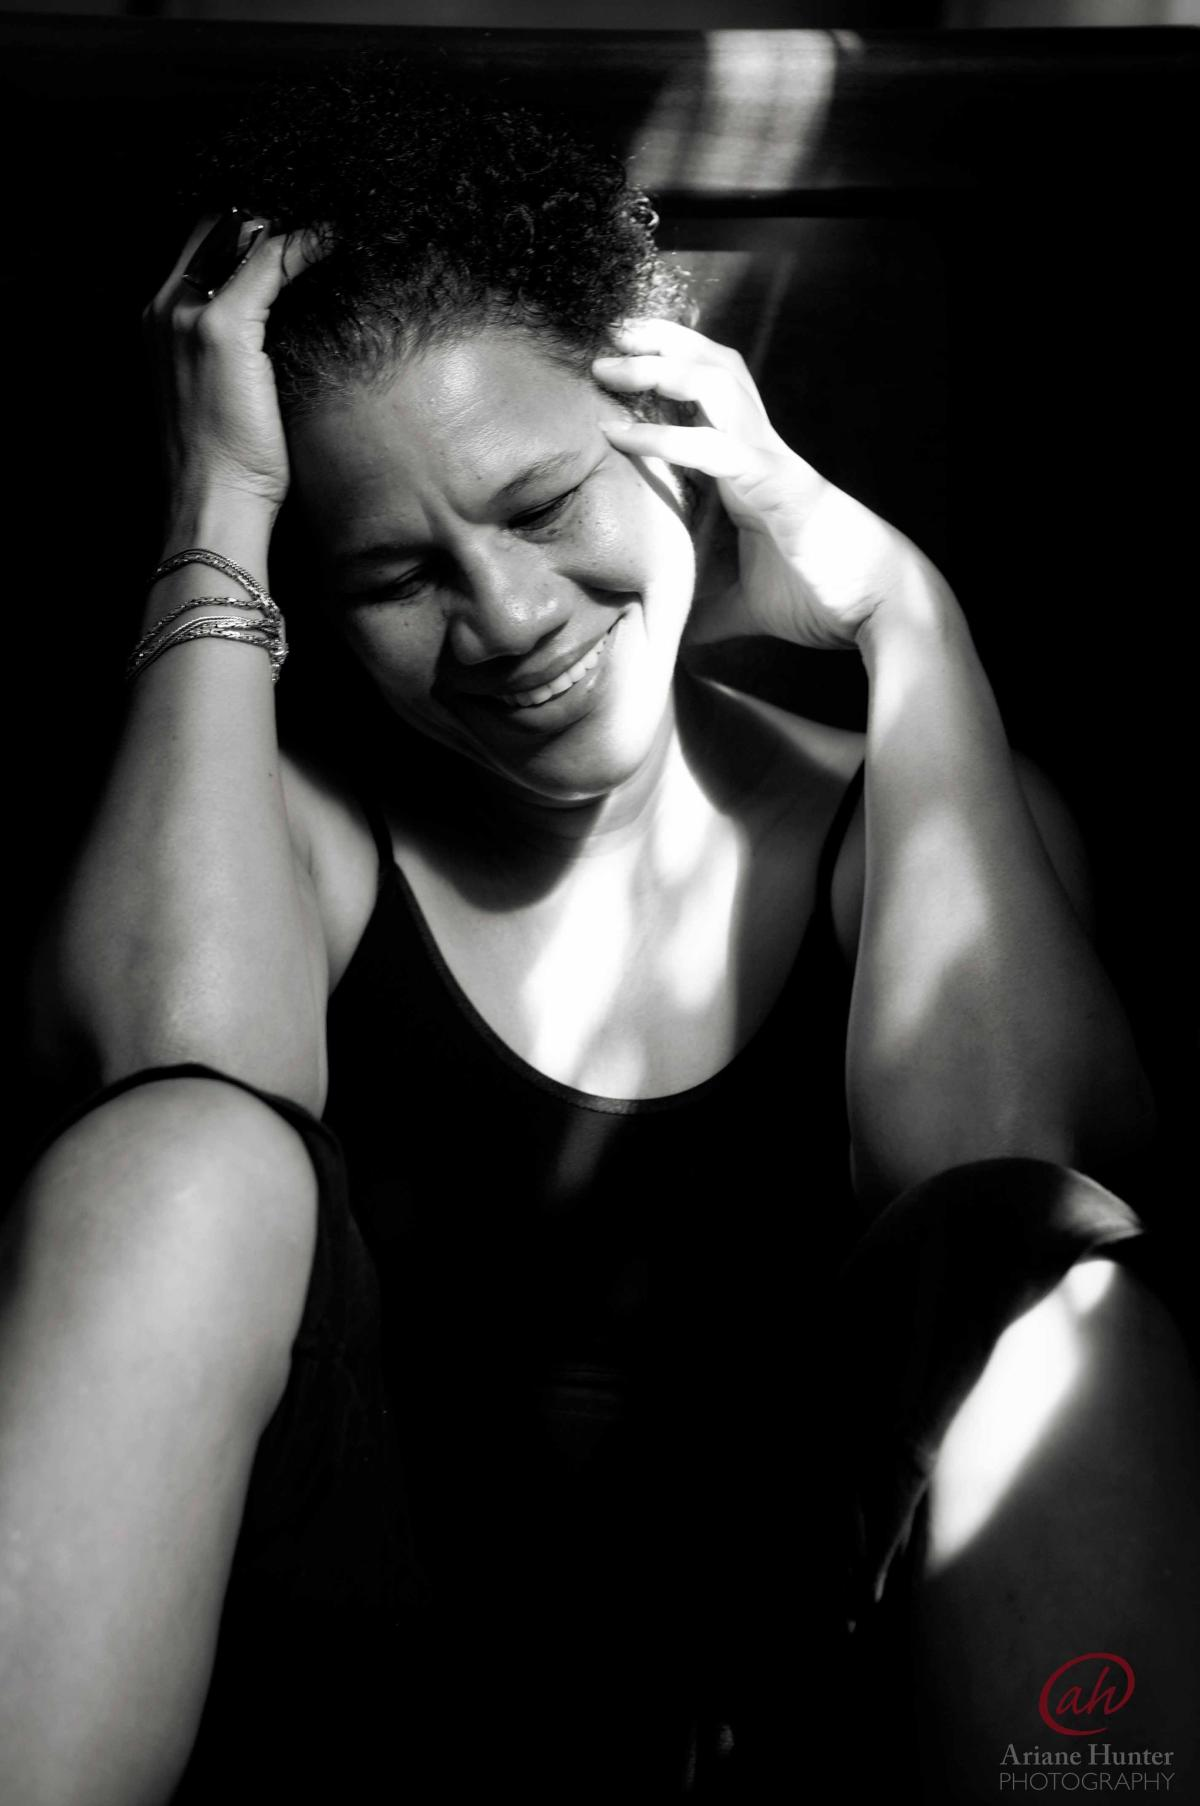 BW portrait of a smiling woman